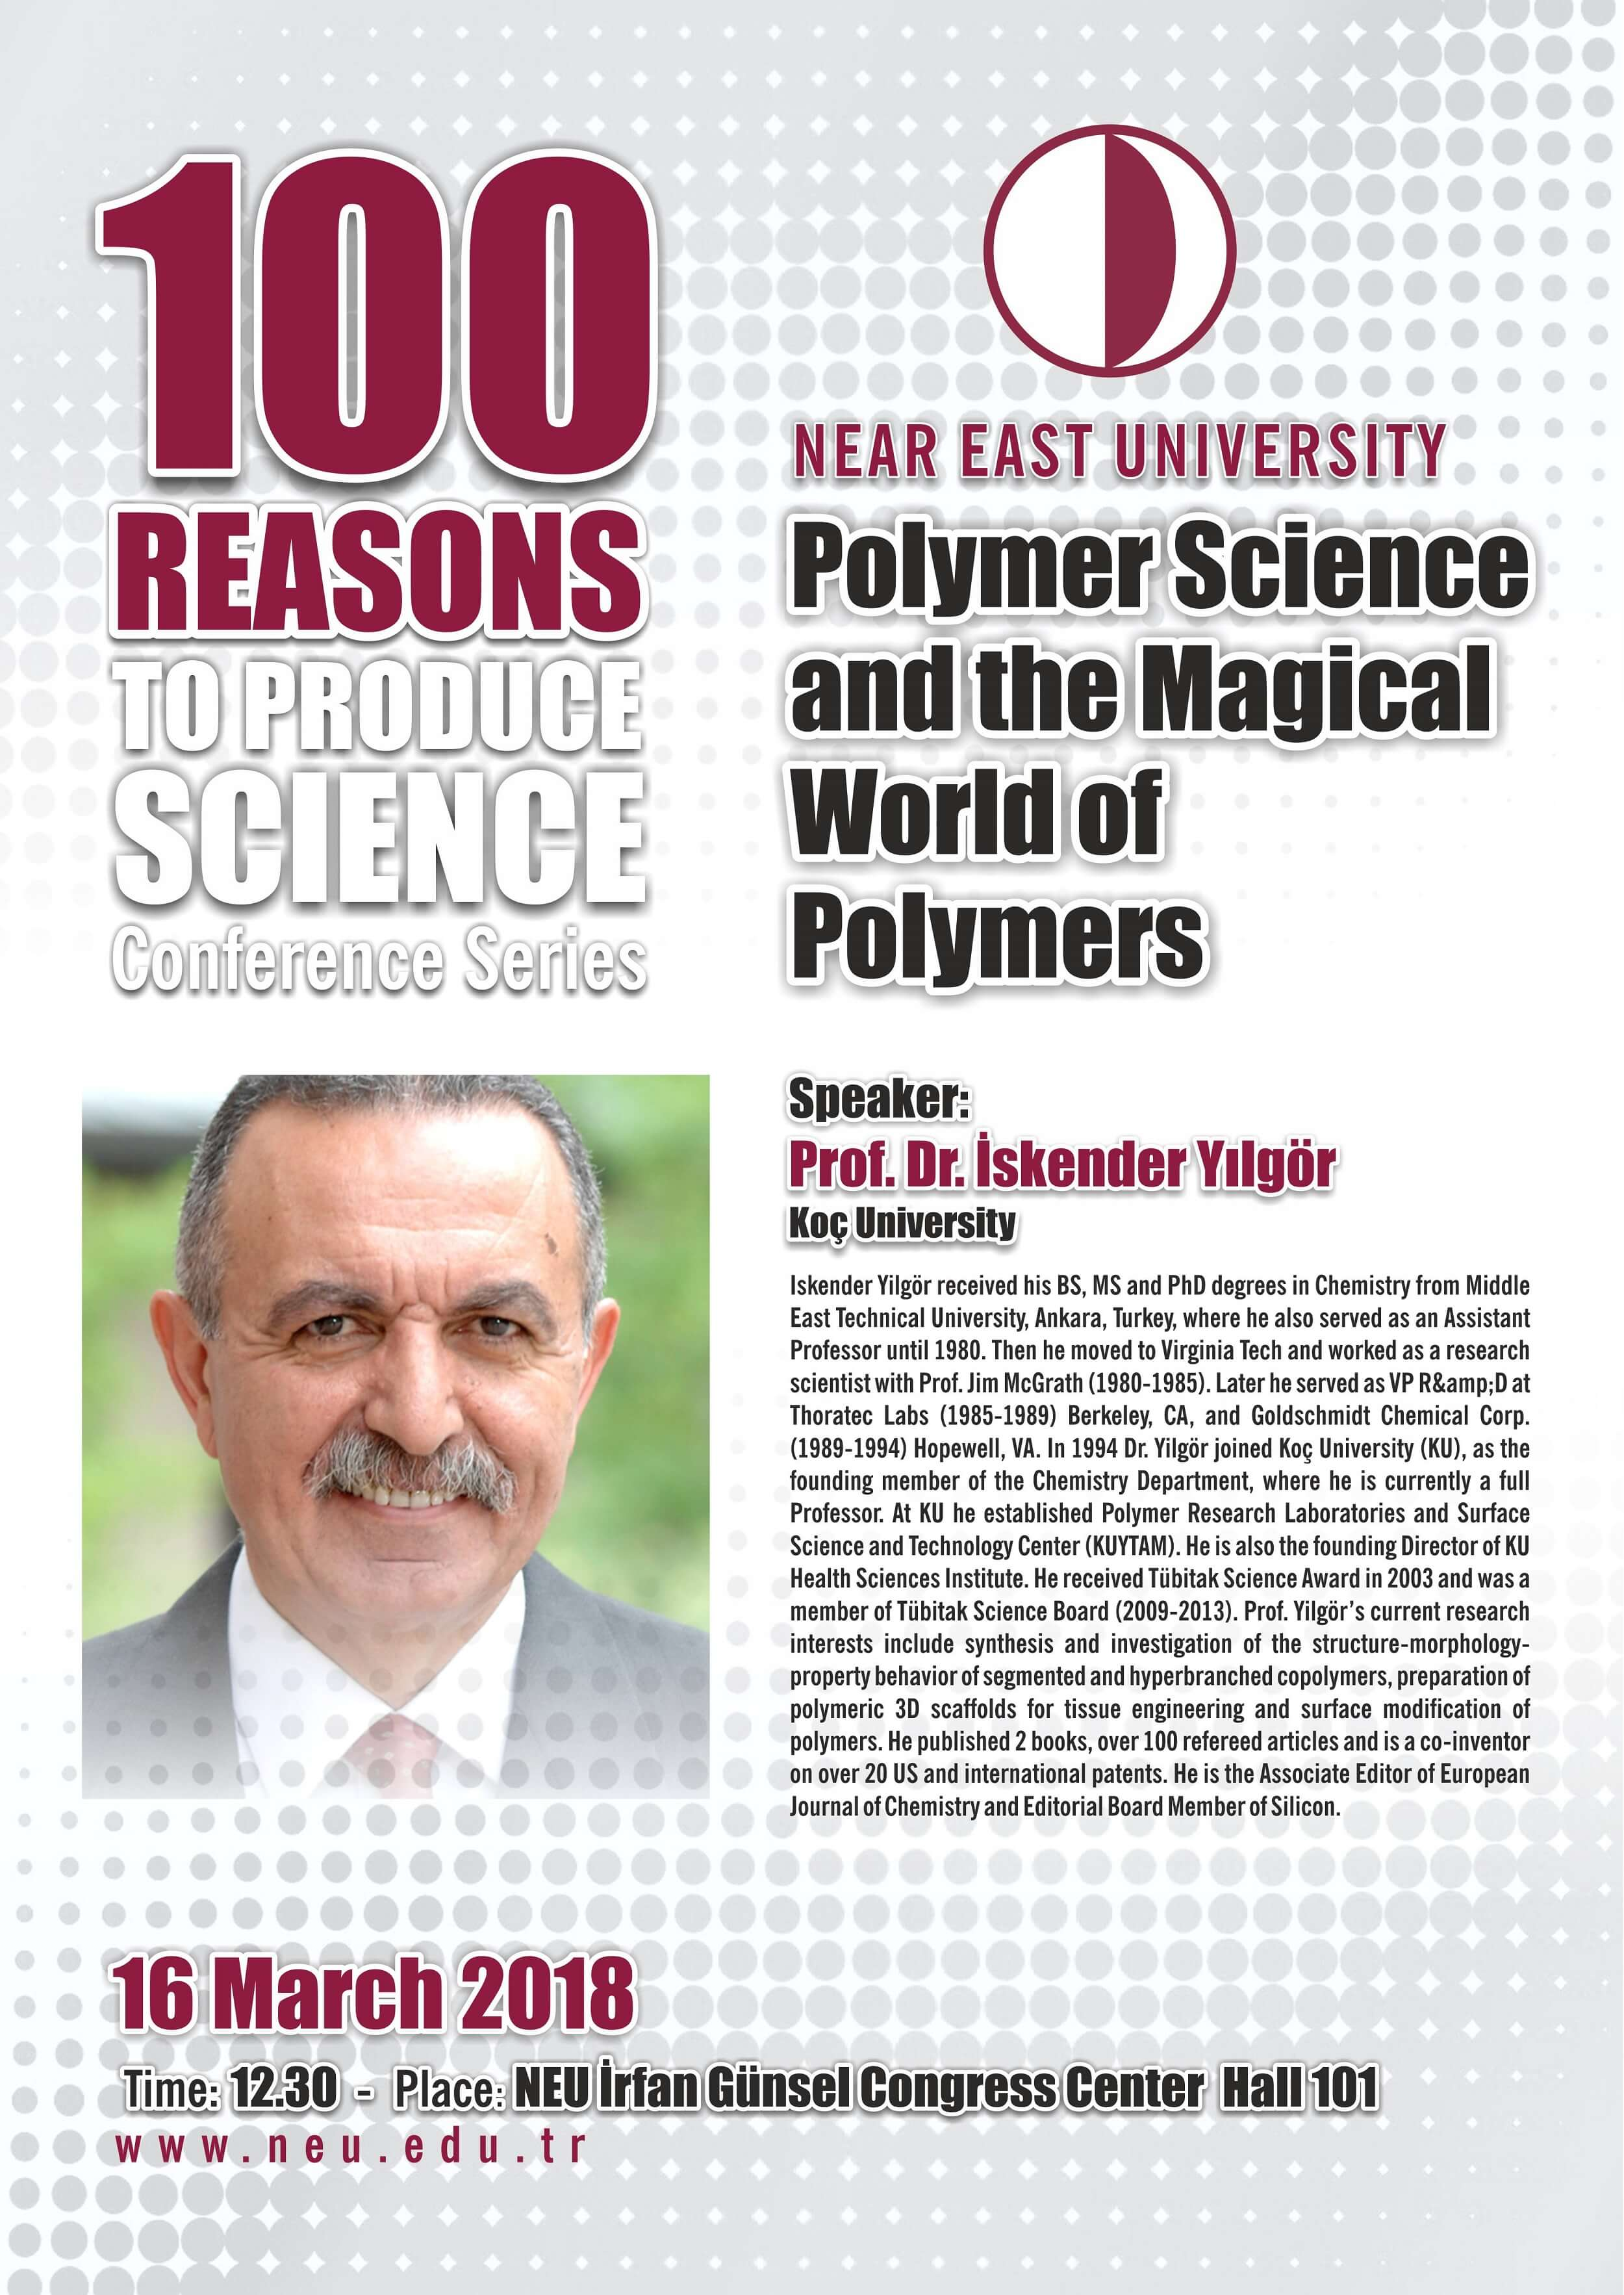 Conference: Polymer Science and the Magical World of Polymers